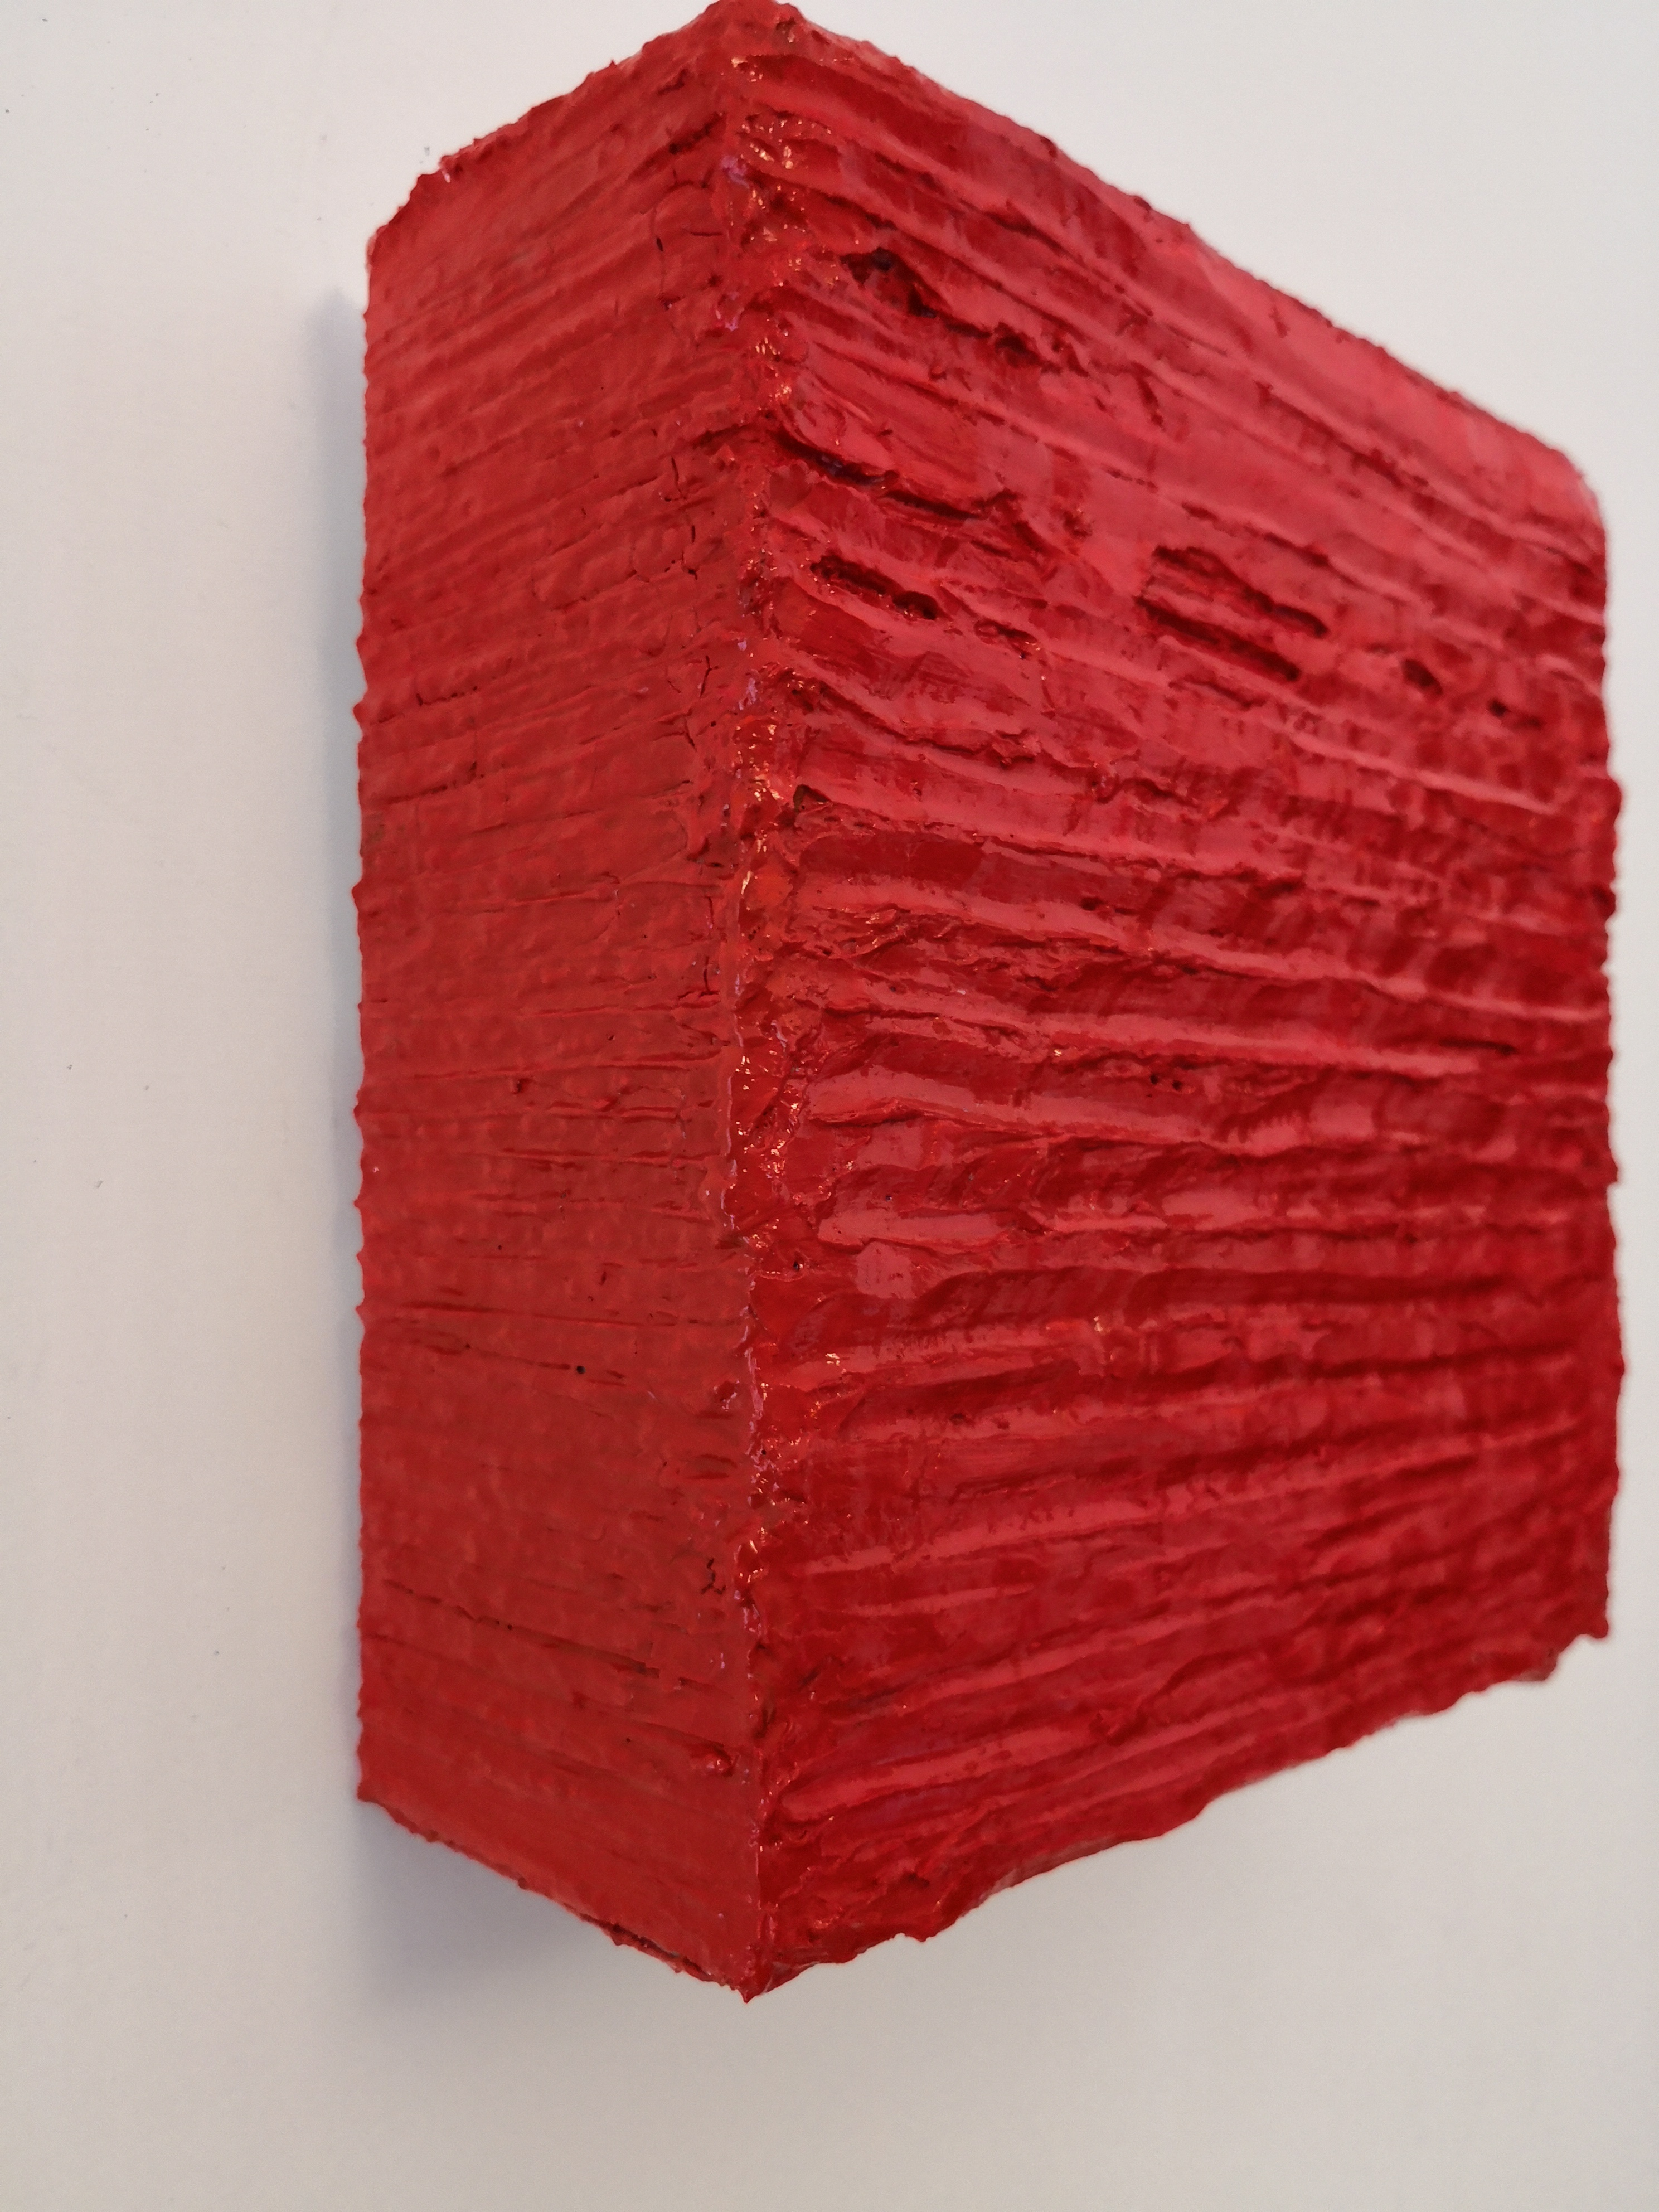 RED CUBE 1